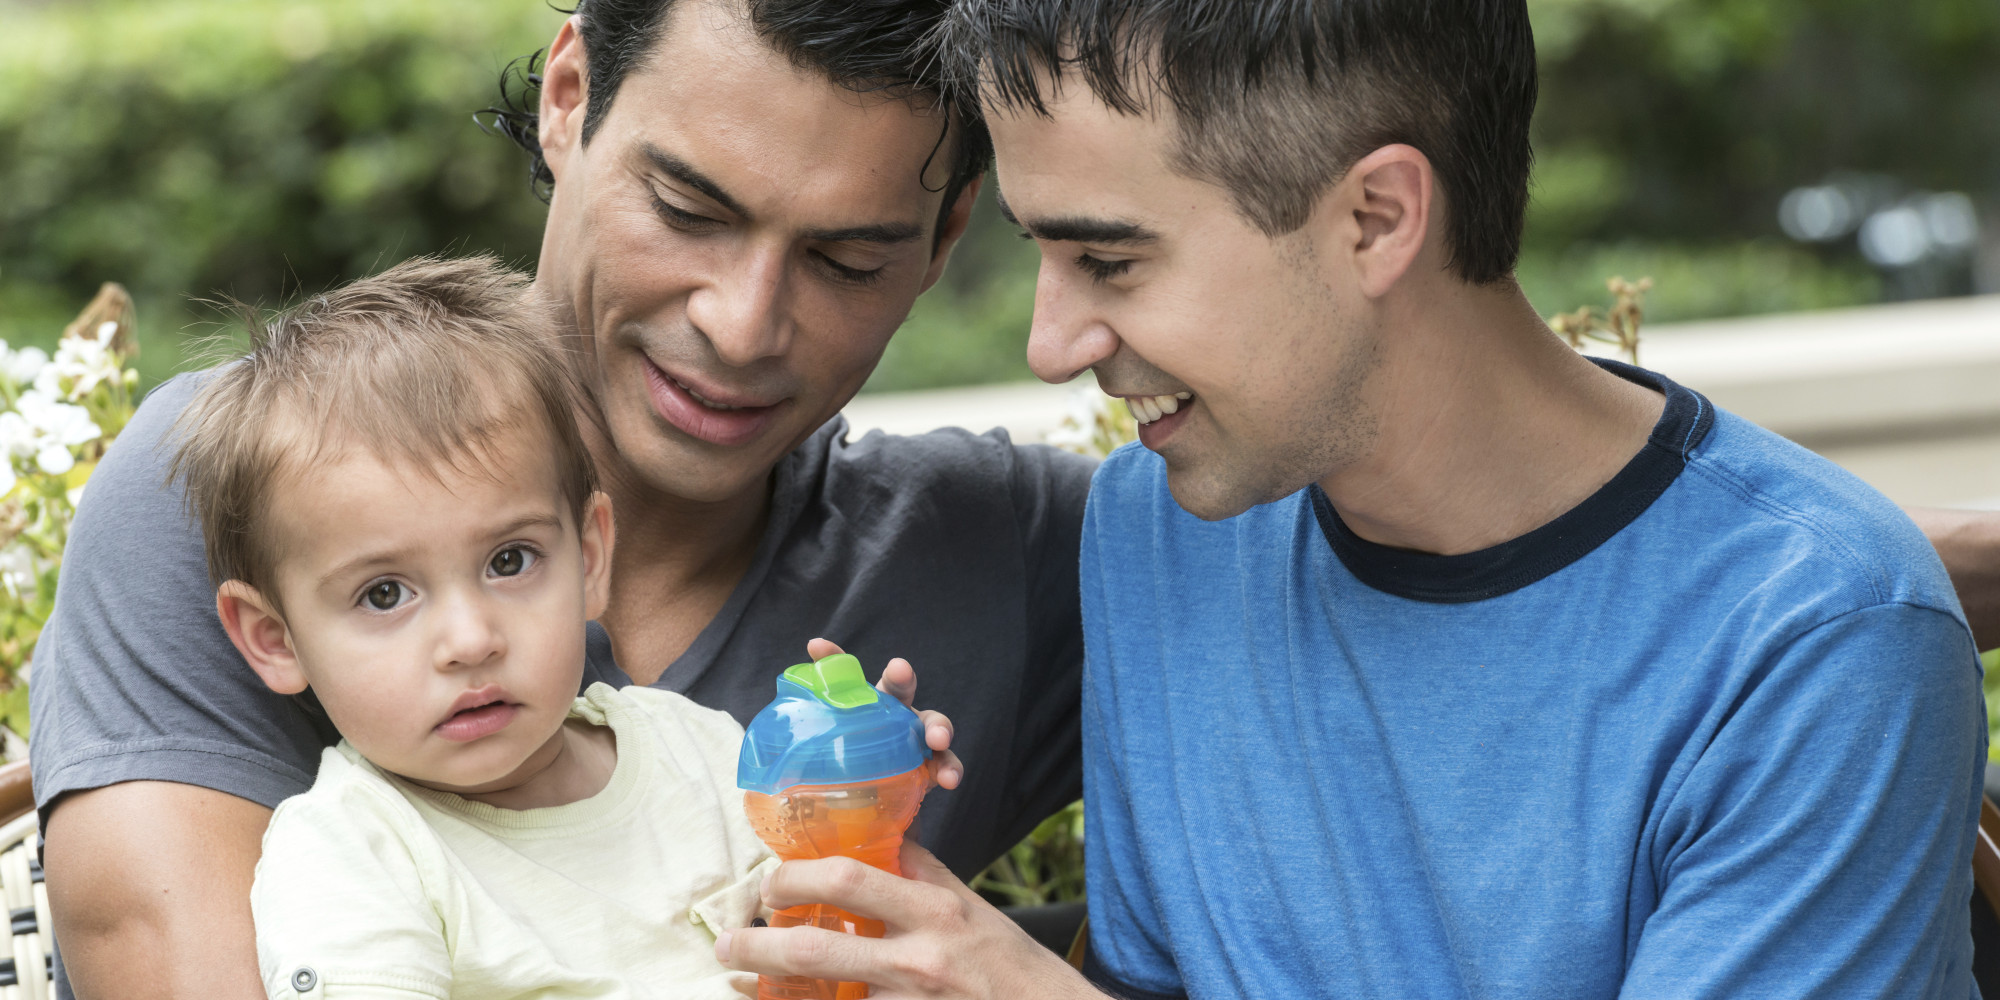 homosexual parents Discussion and debate about adoption and foster care by gay, lesbian, and  bisexual (glb) parents occurs frequently among policymakers, social service.